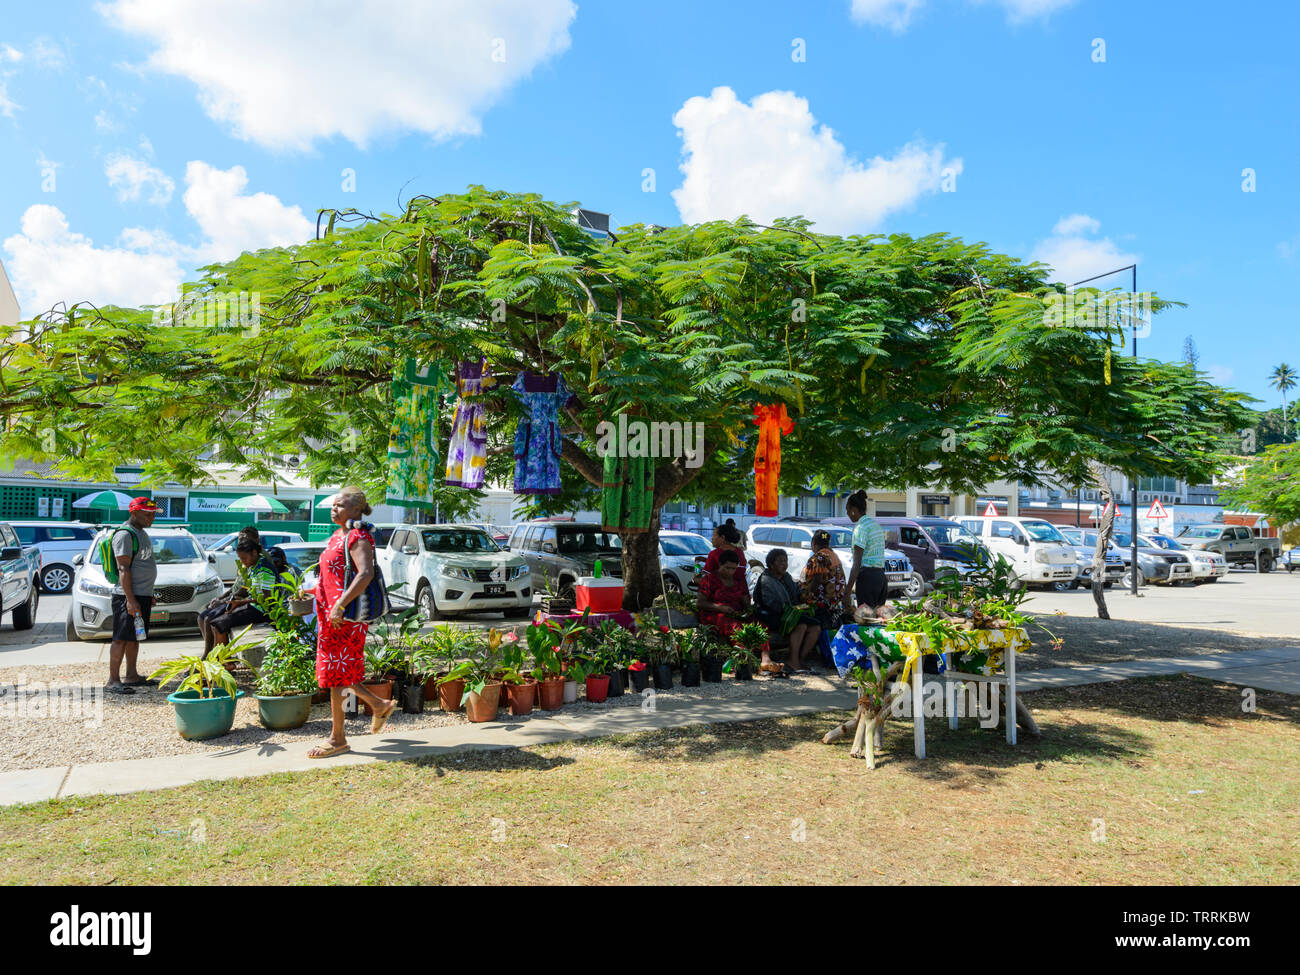 Market stall with dresses and plants for sale underneath a Poinciana or Christmas Tree, Port Vila, Efate Island, Vanuatu, Melanesia - Stock Image